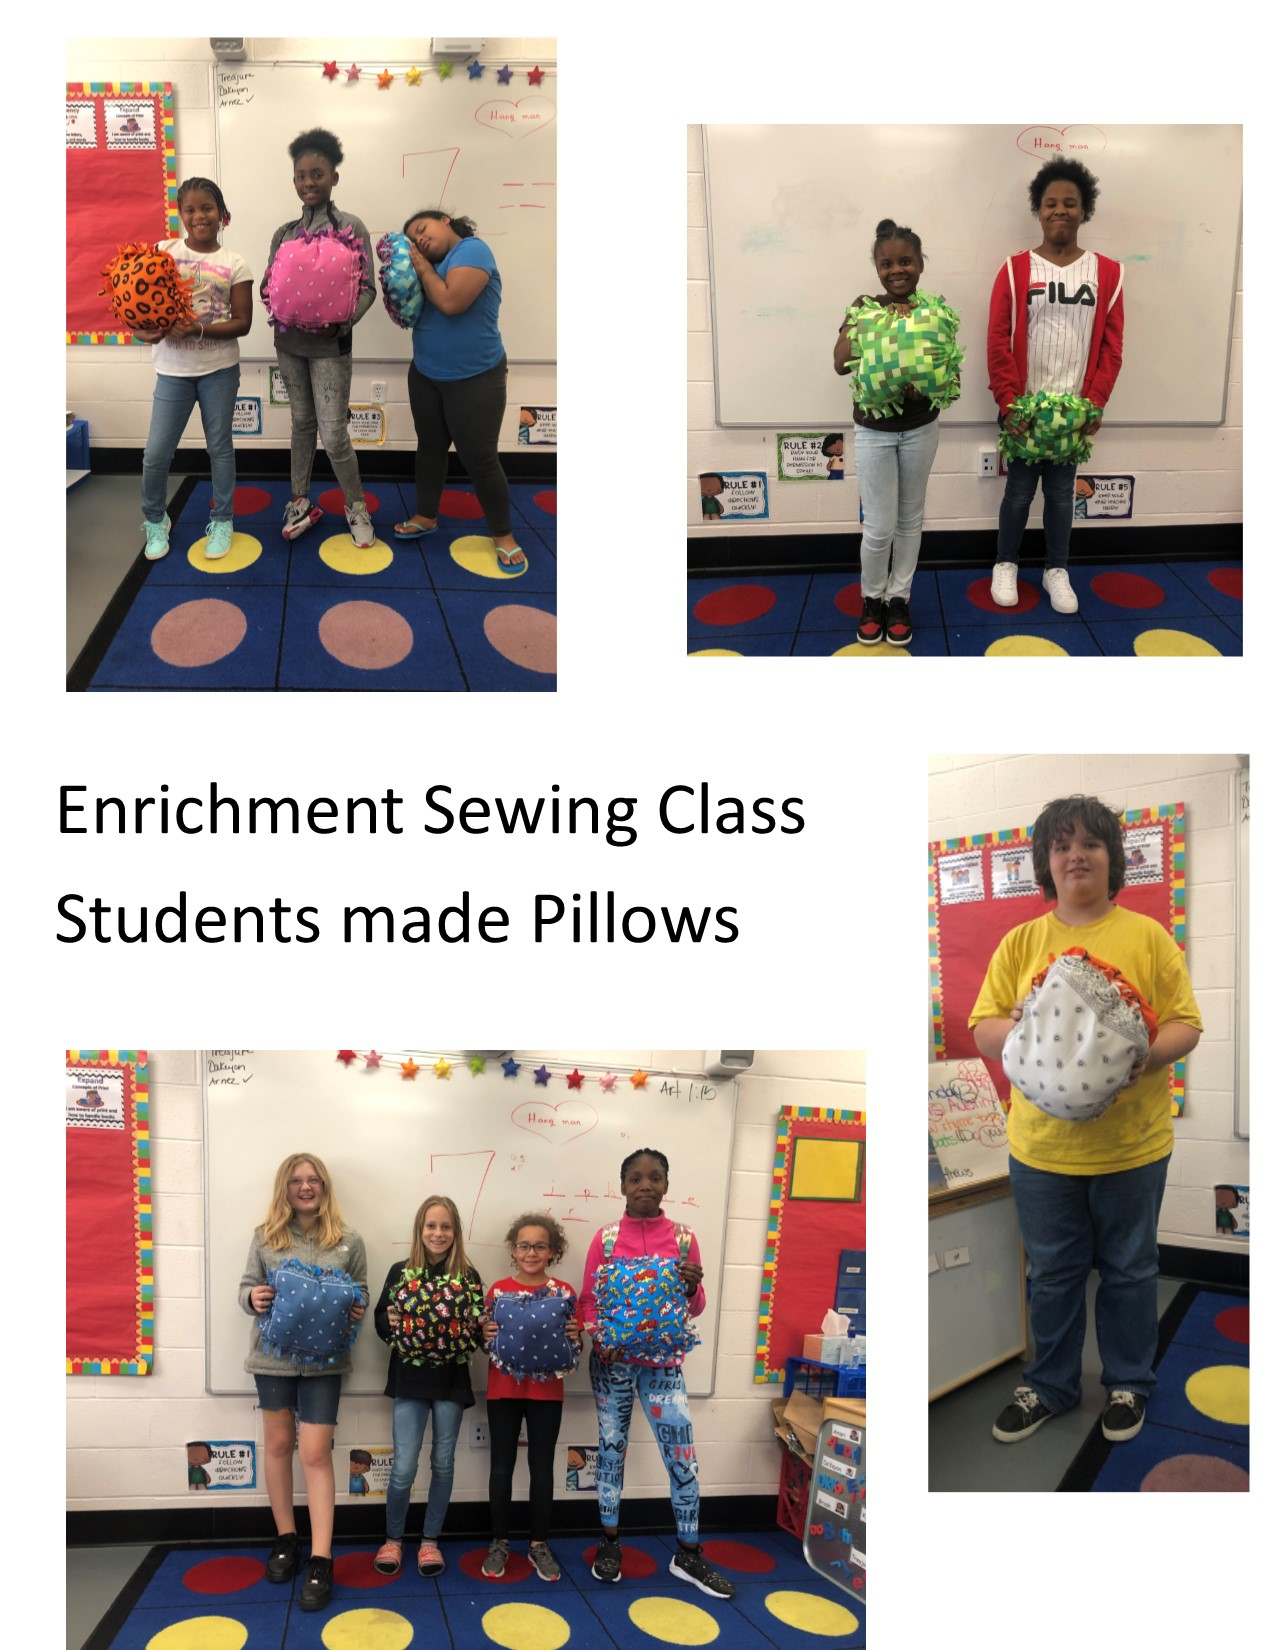 Enrichment Sewing Class Students made Pillows